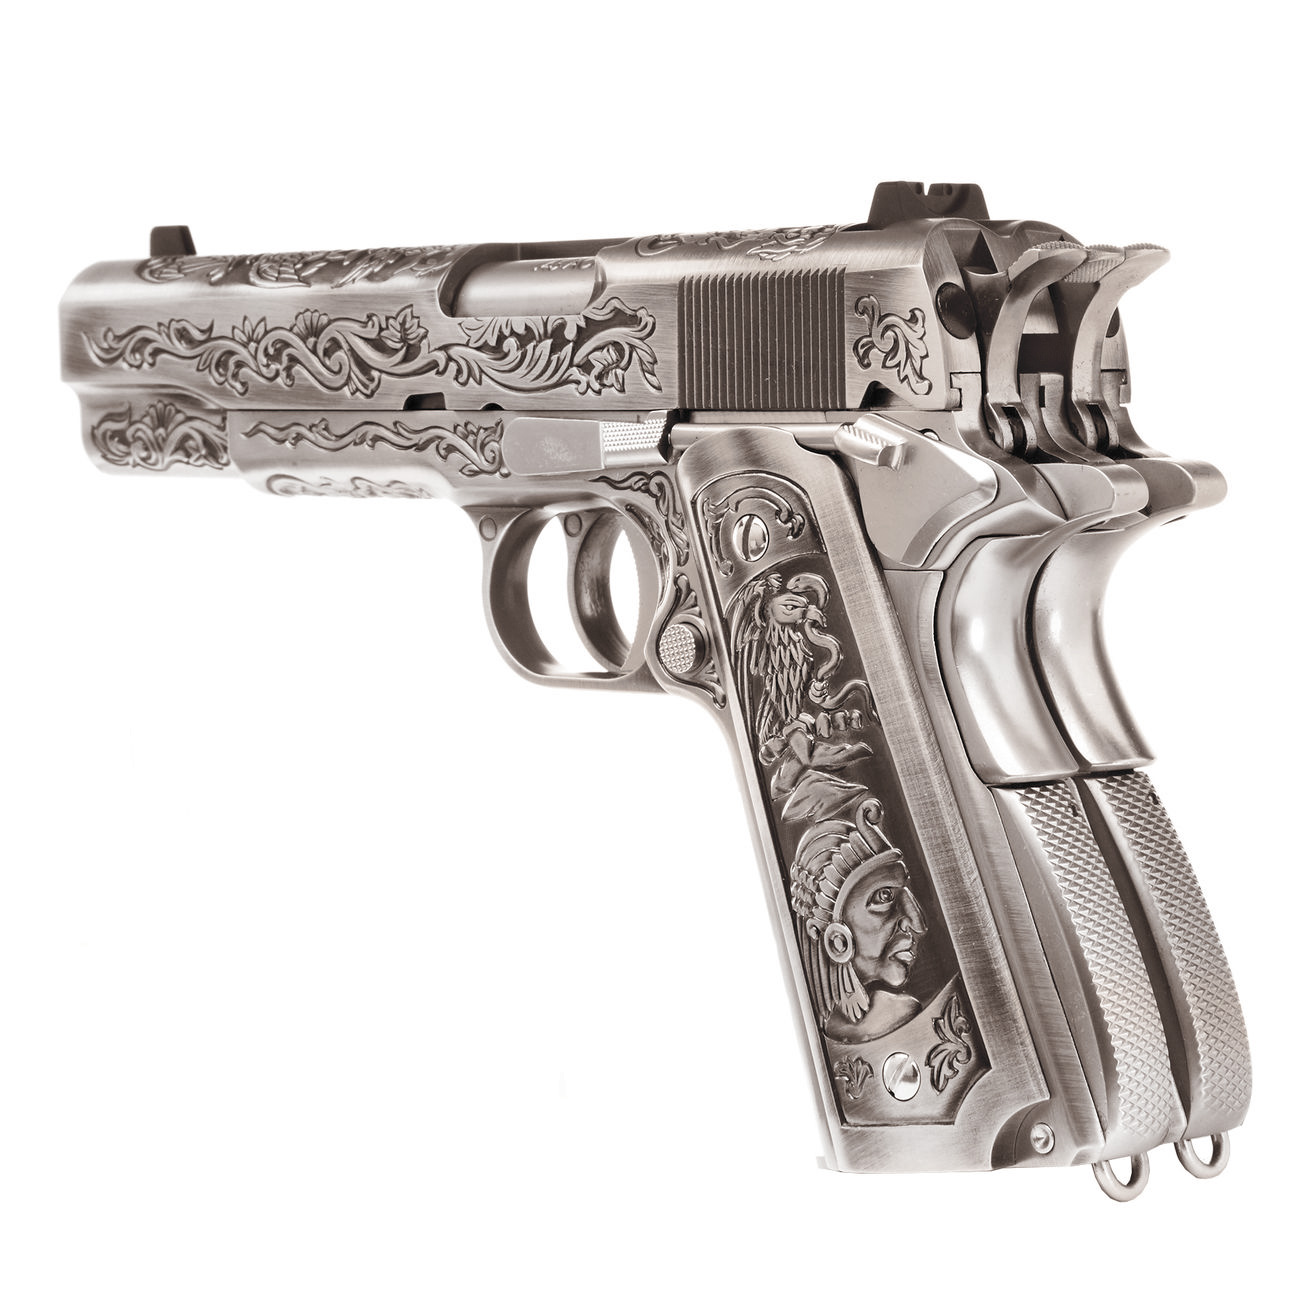 Wei-ETech M1911 Double Barrel Etched Version Mehico Druglord Vollmetall GBB 6mm BB Satin-Chrome 3